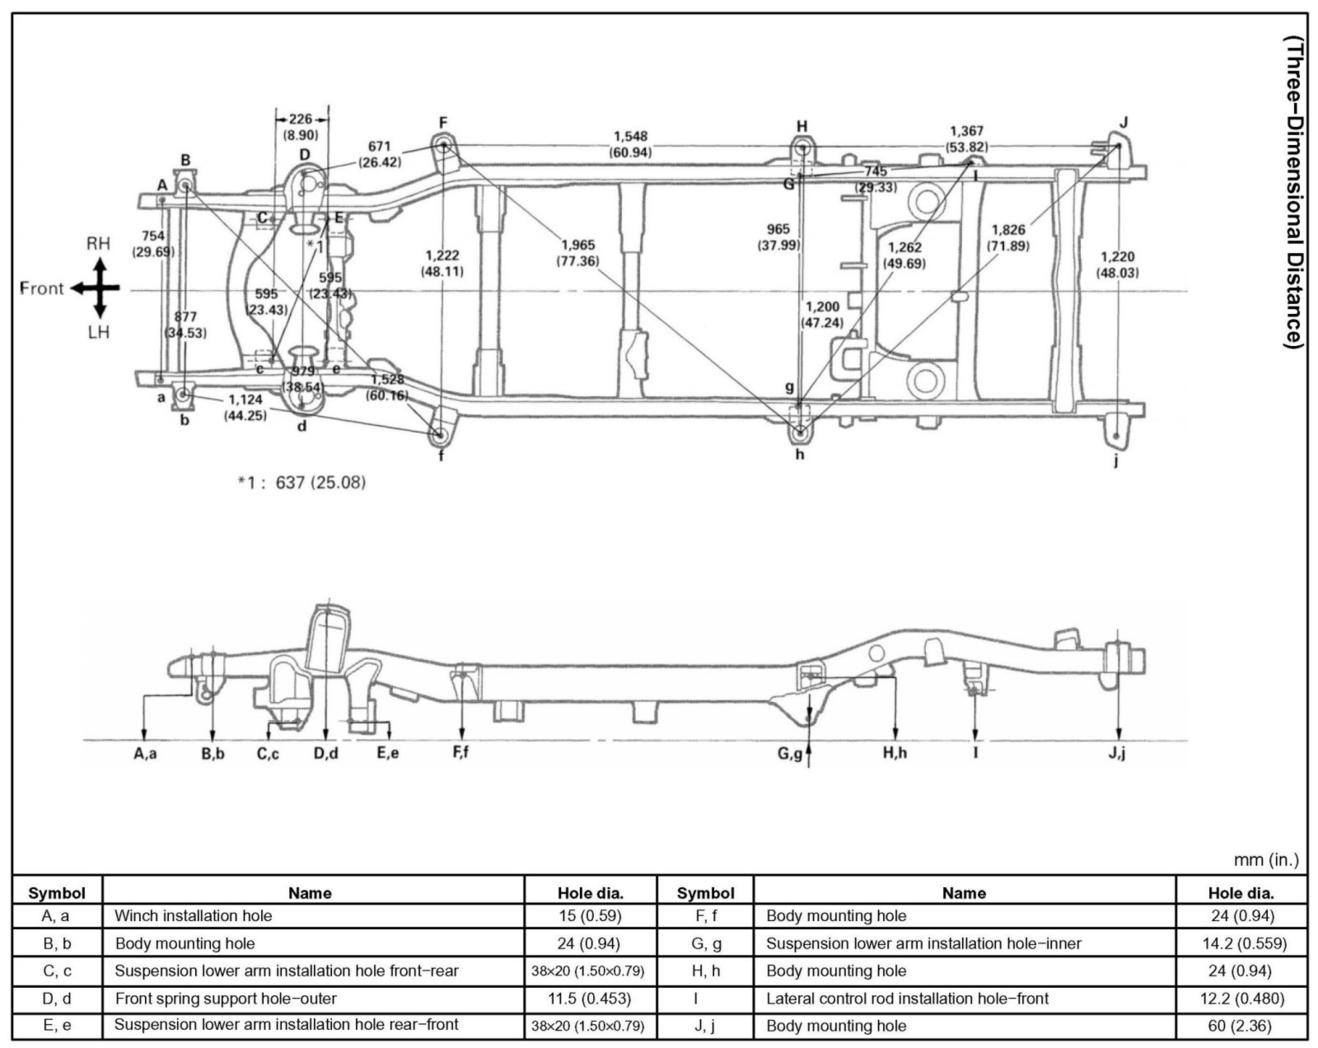 Ford F 150 Truck Bed Dimensions Upcoming Cars 2020 Mercury 200 Hp Wiring Diagram F150 Frame